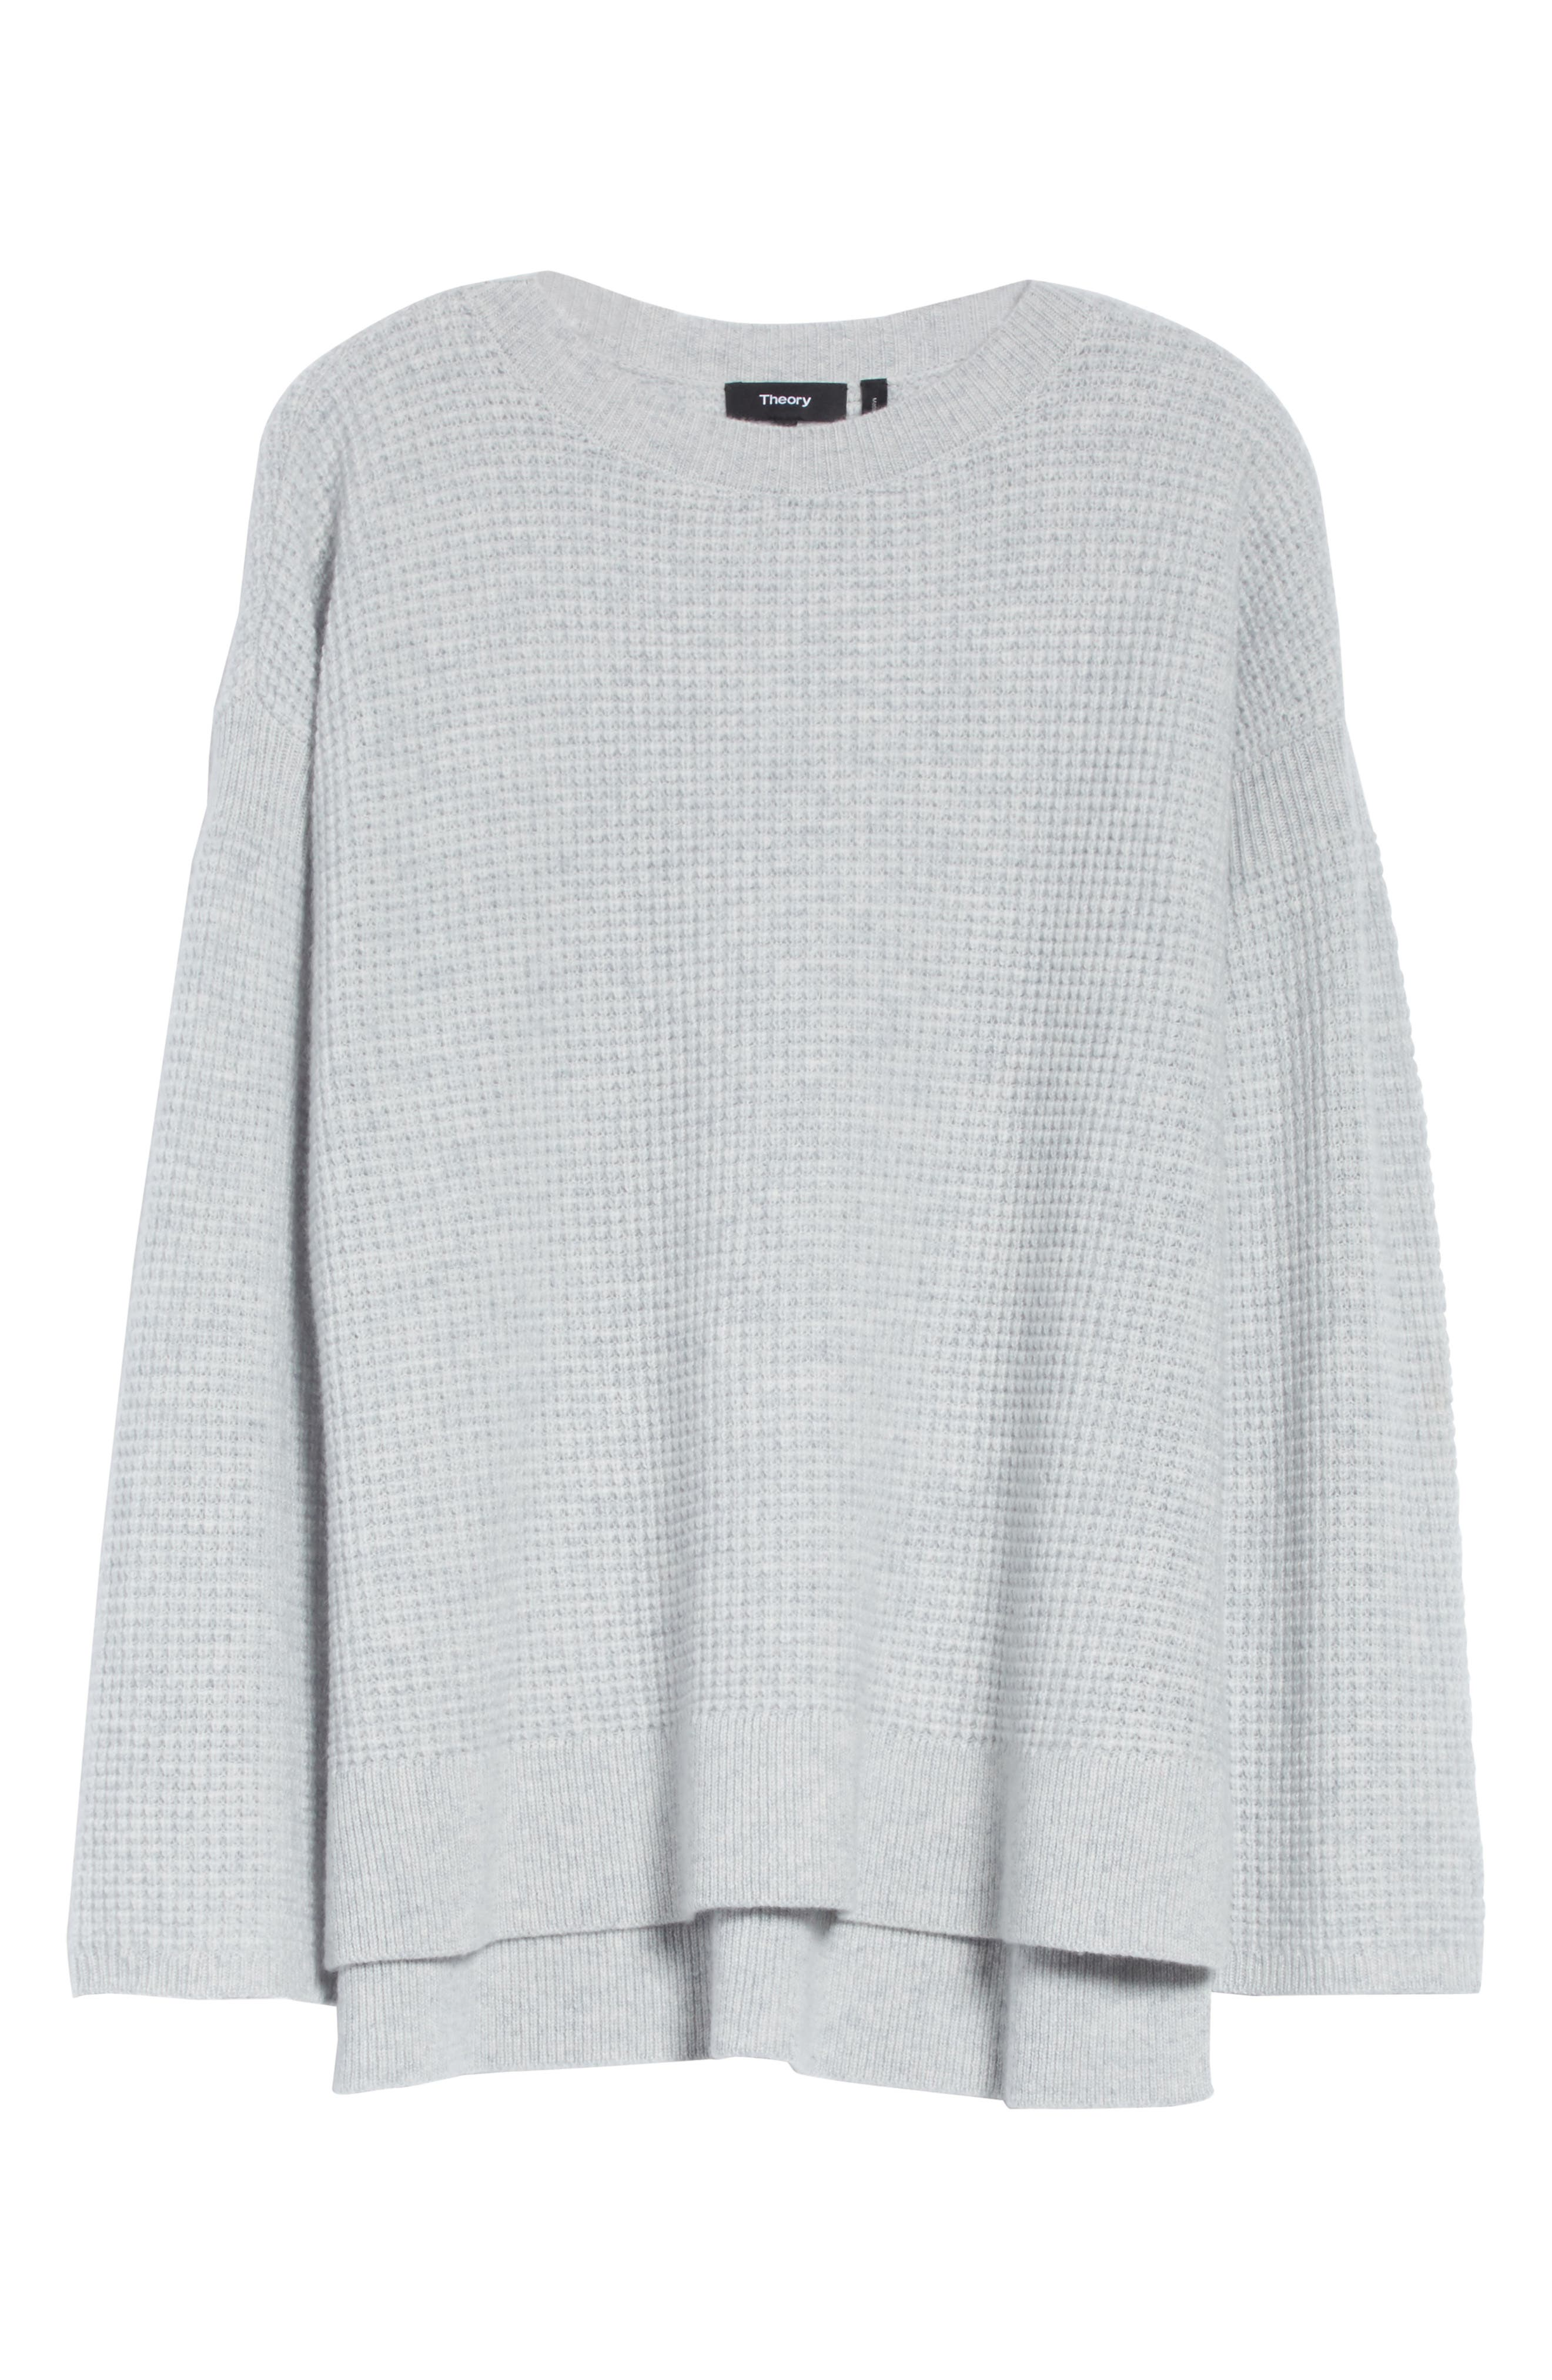 Cinch Sleeve Cashmere Sweater,                             Alternate thumbnail 6, color,                             Whale Grey